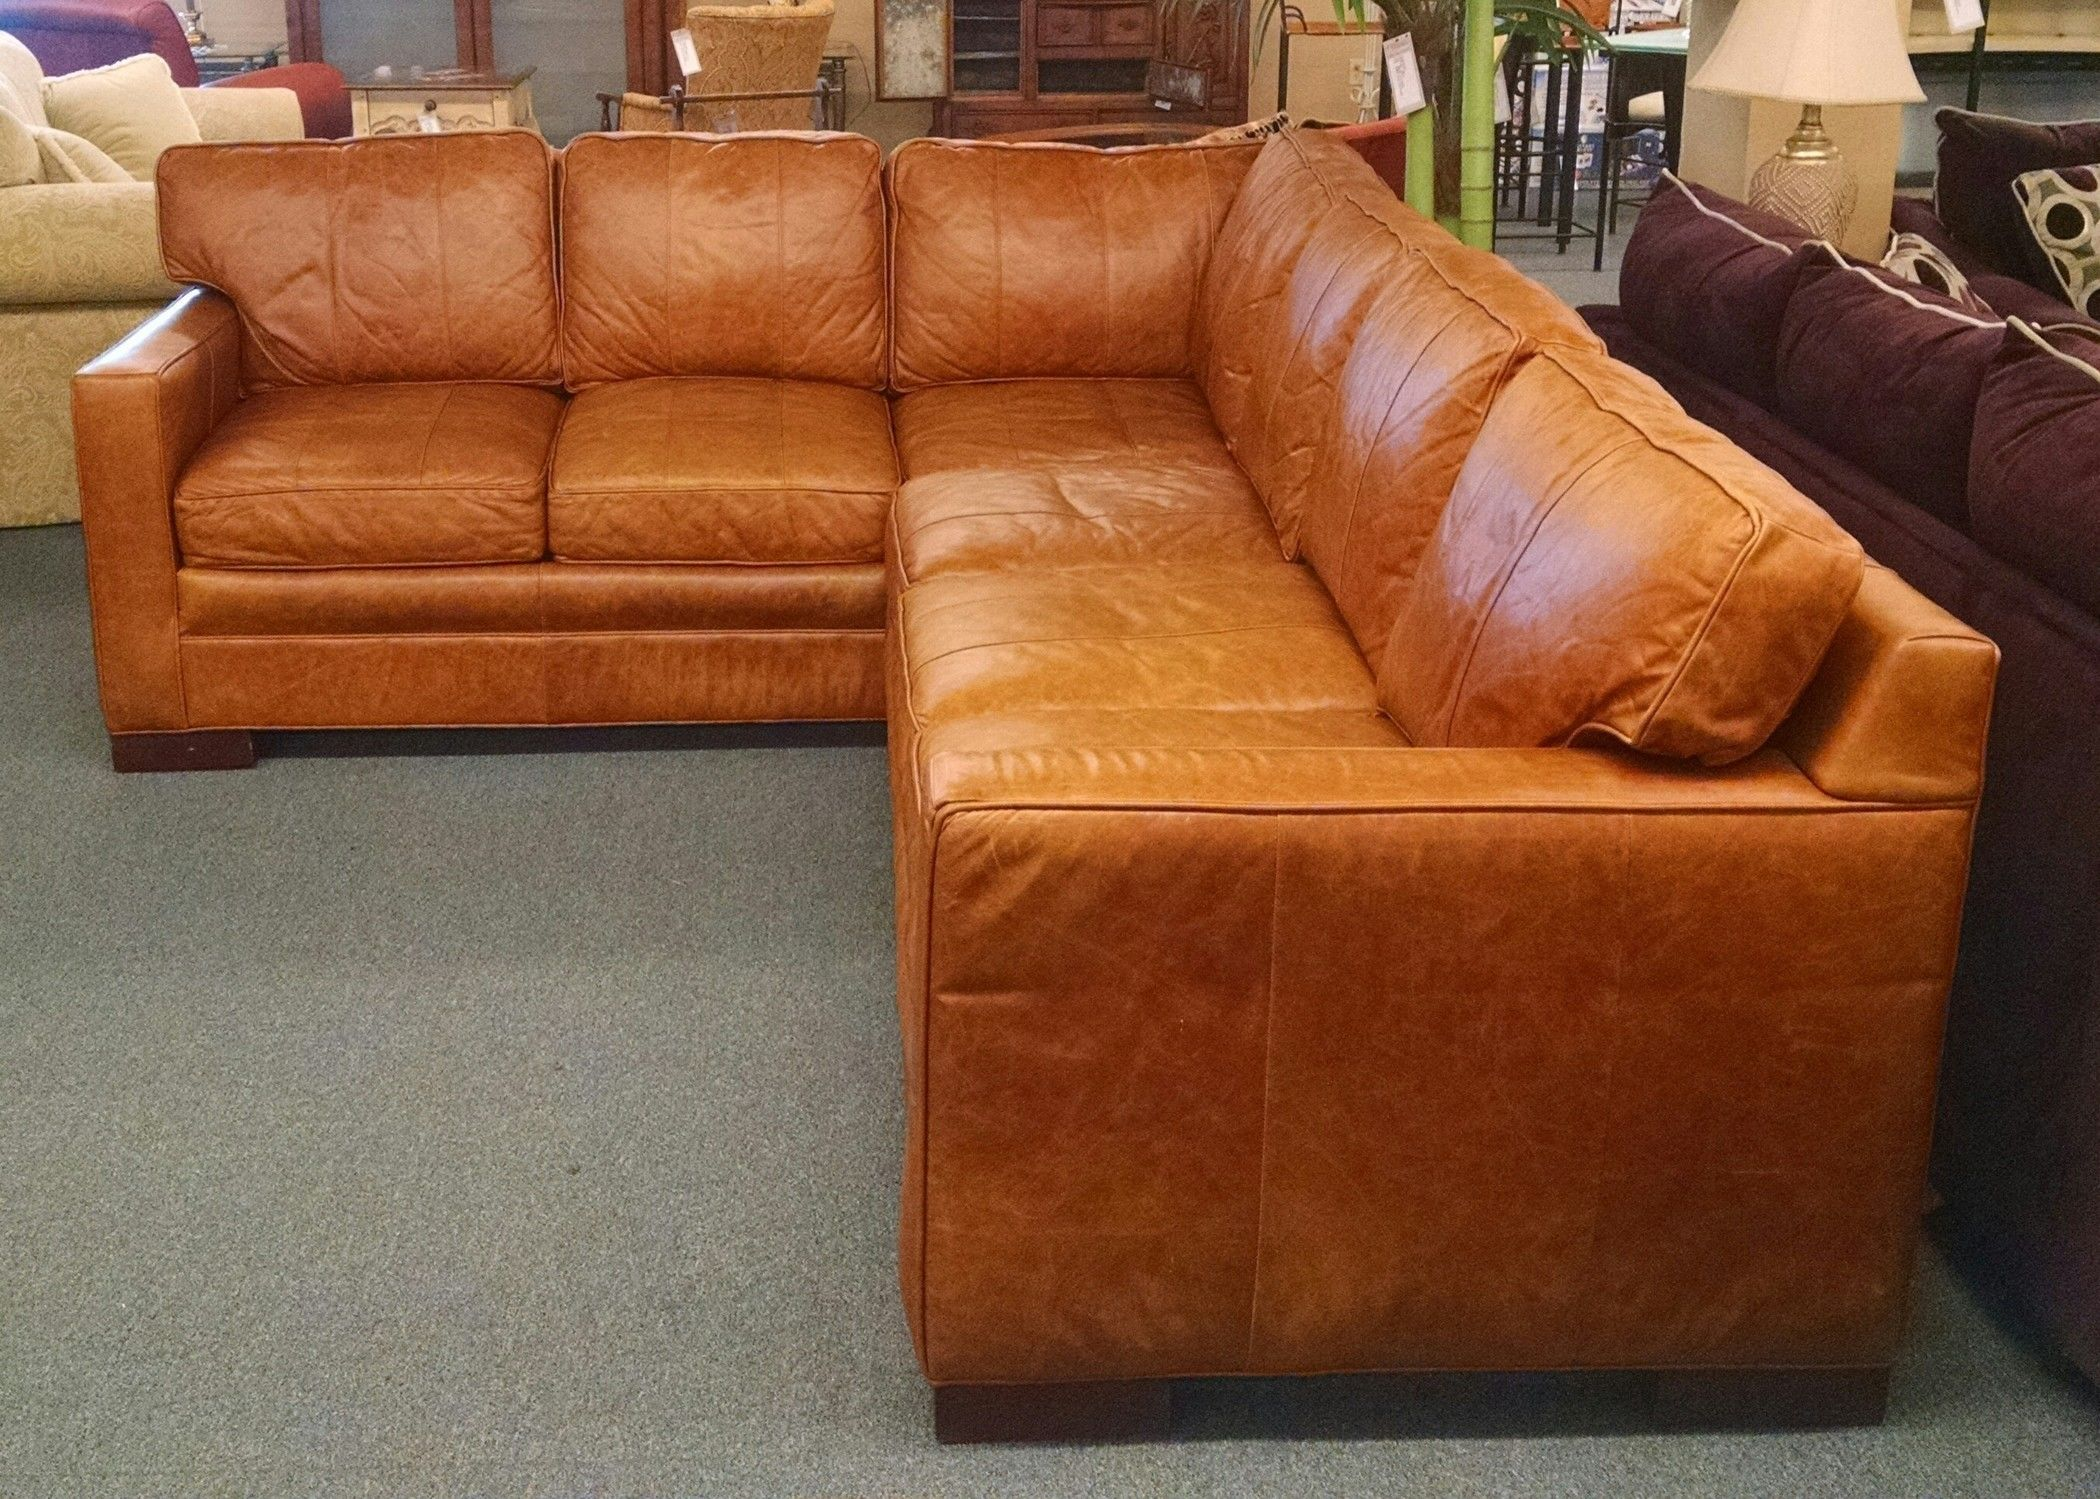 Vanguard Leather Vanguard Leather Sectional Delmarva Furniture Consignment